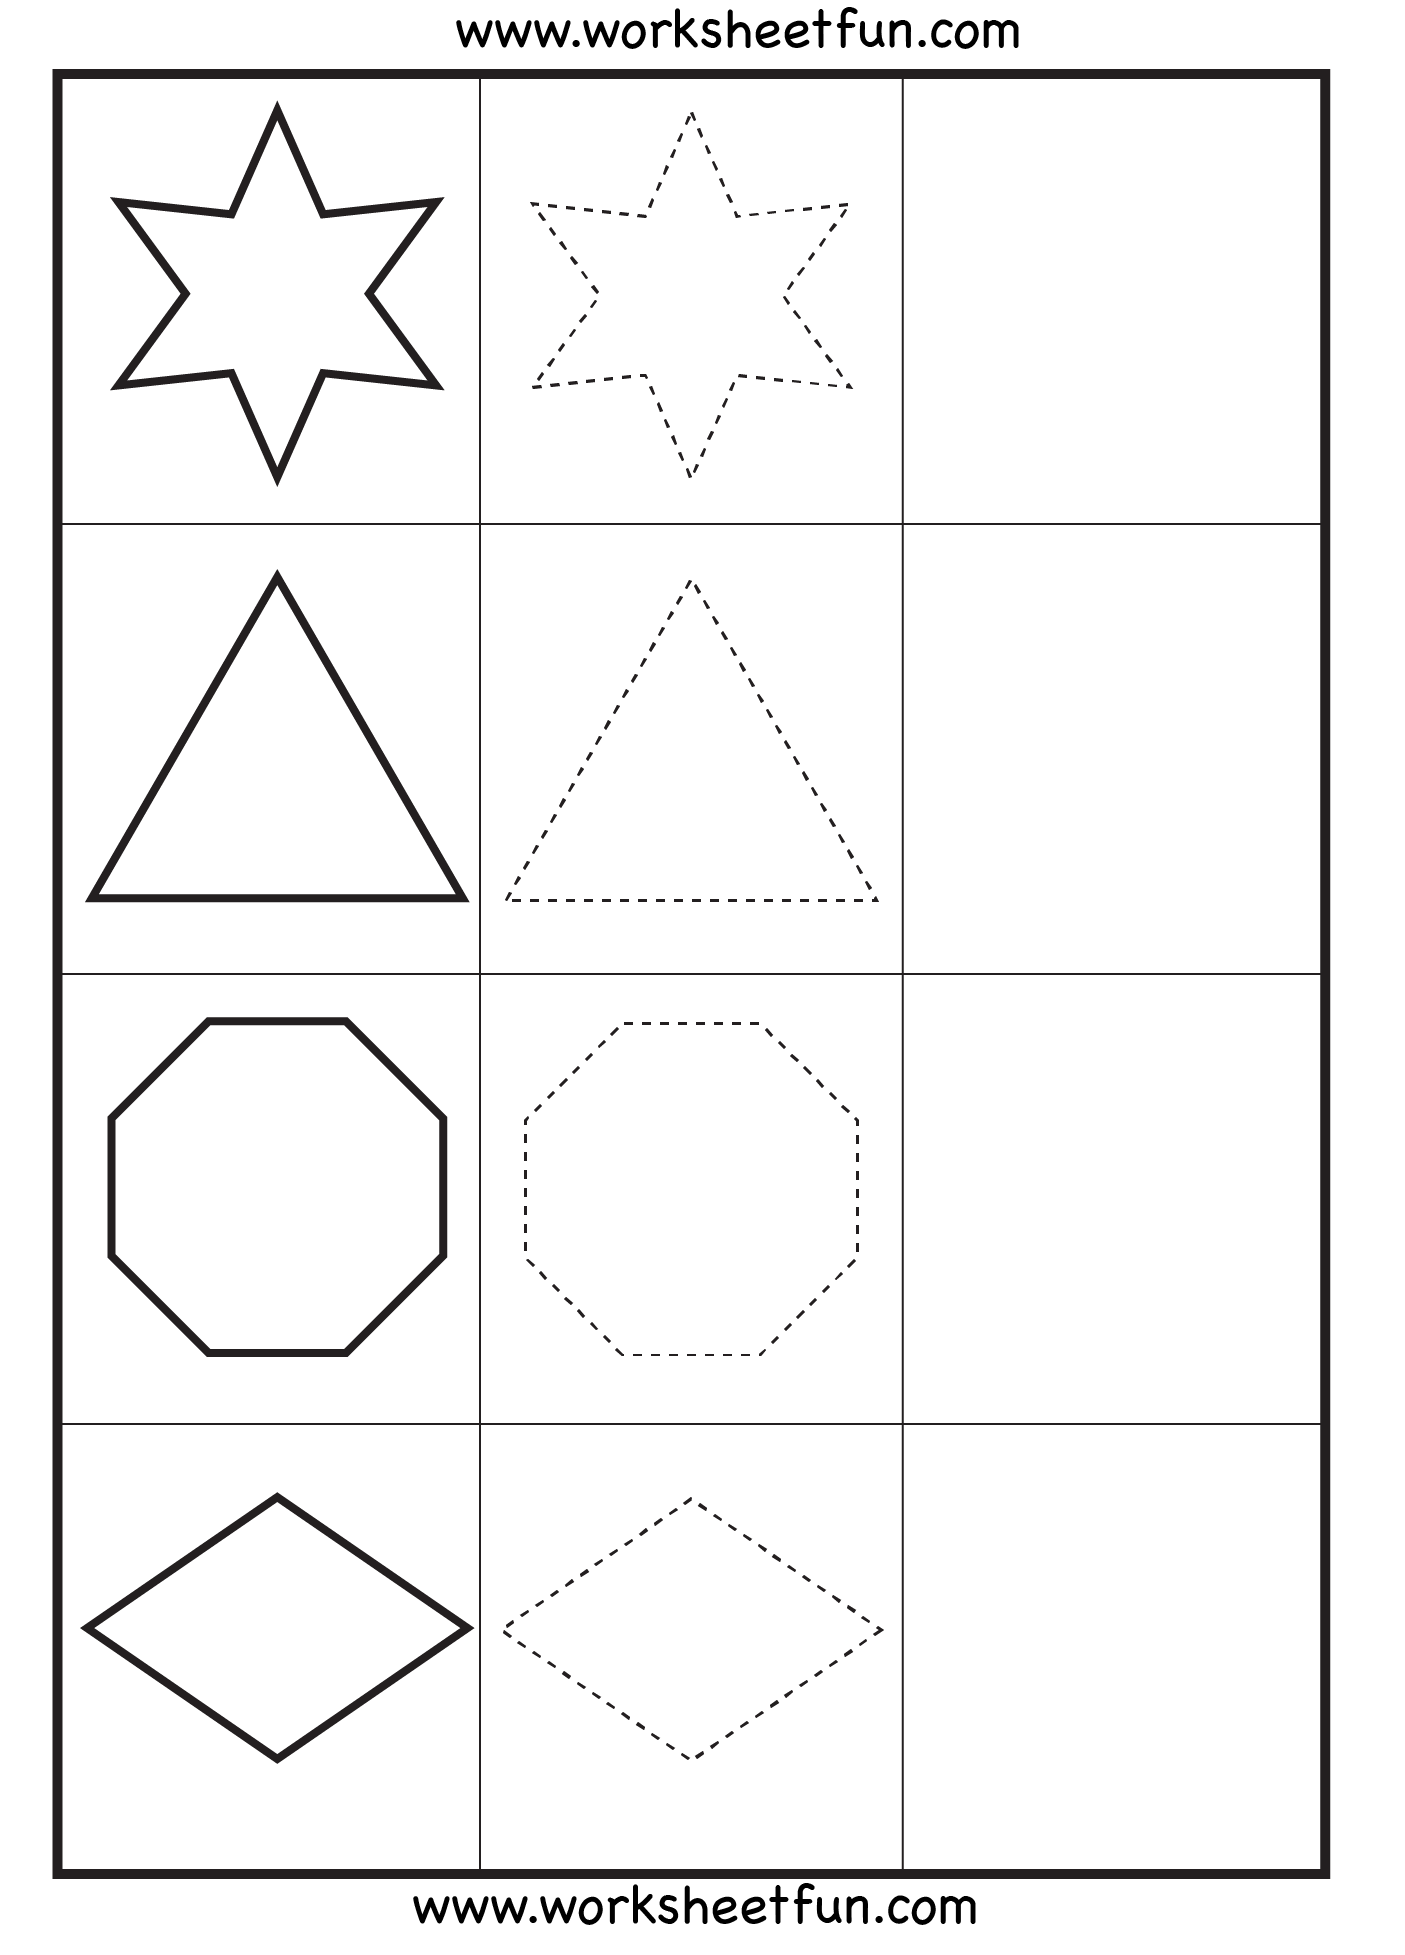 Complex Shape Practice Worksheet